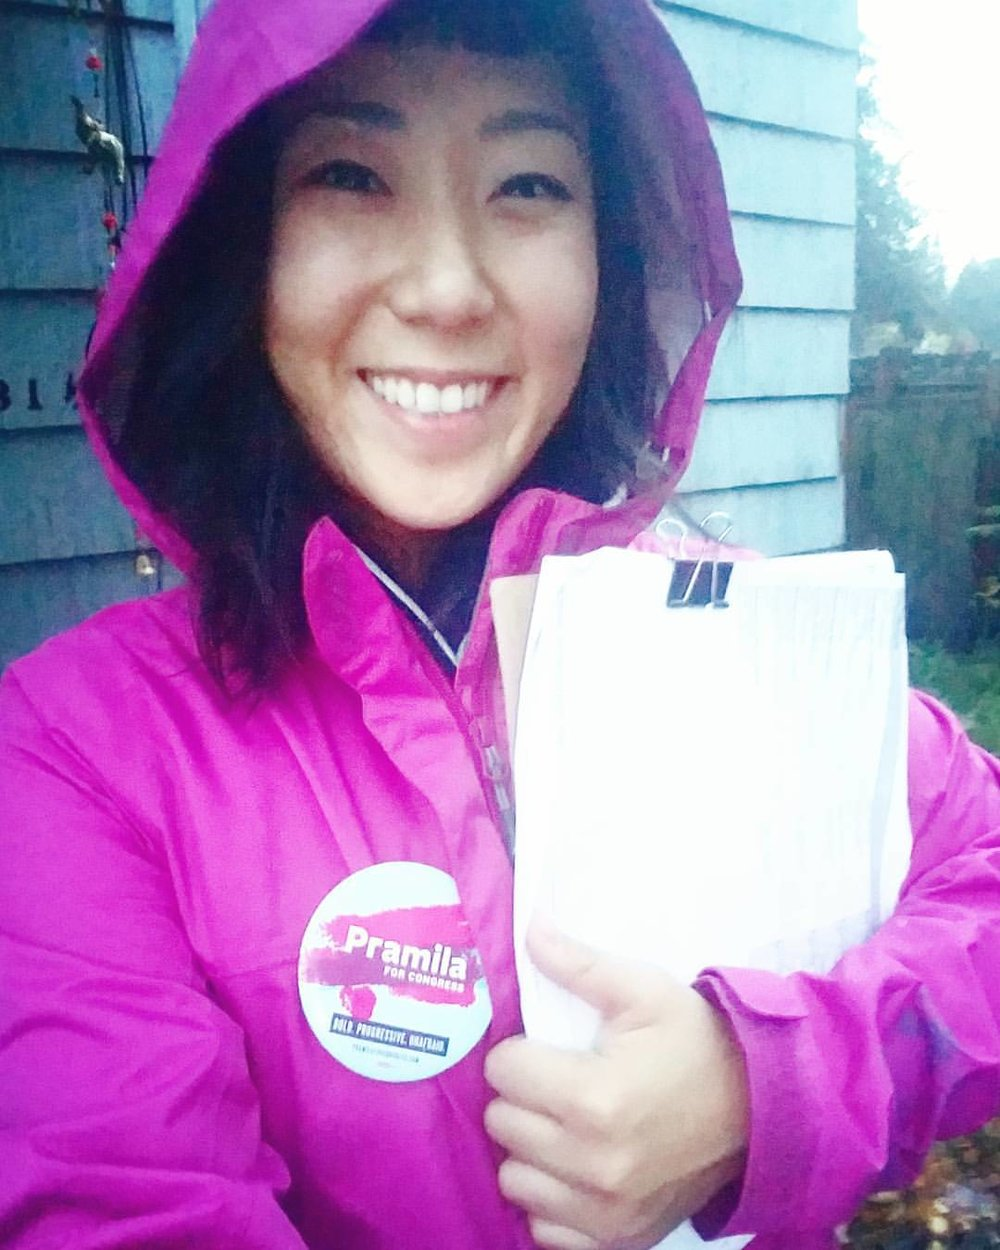 Rain or Shine! Canvassing door to door for Congresswoman Pramila Jayapal during her 2016 campaign.